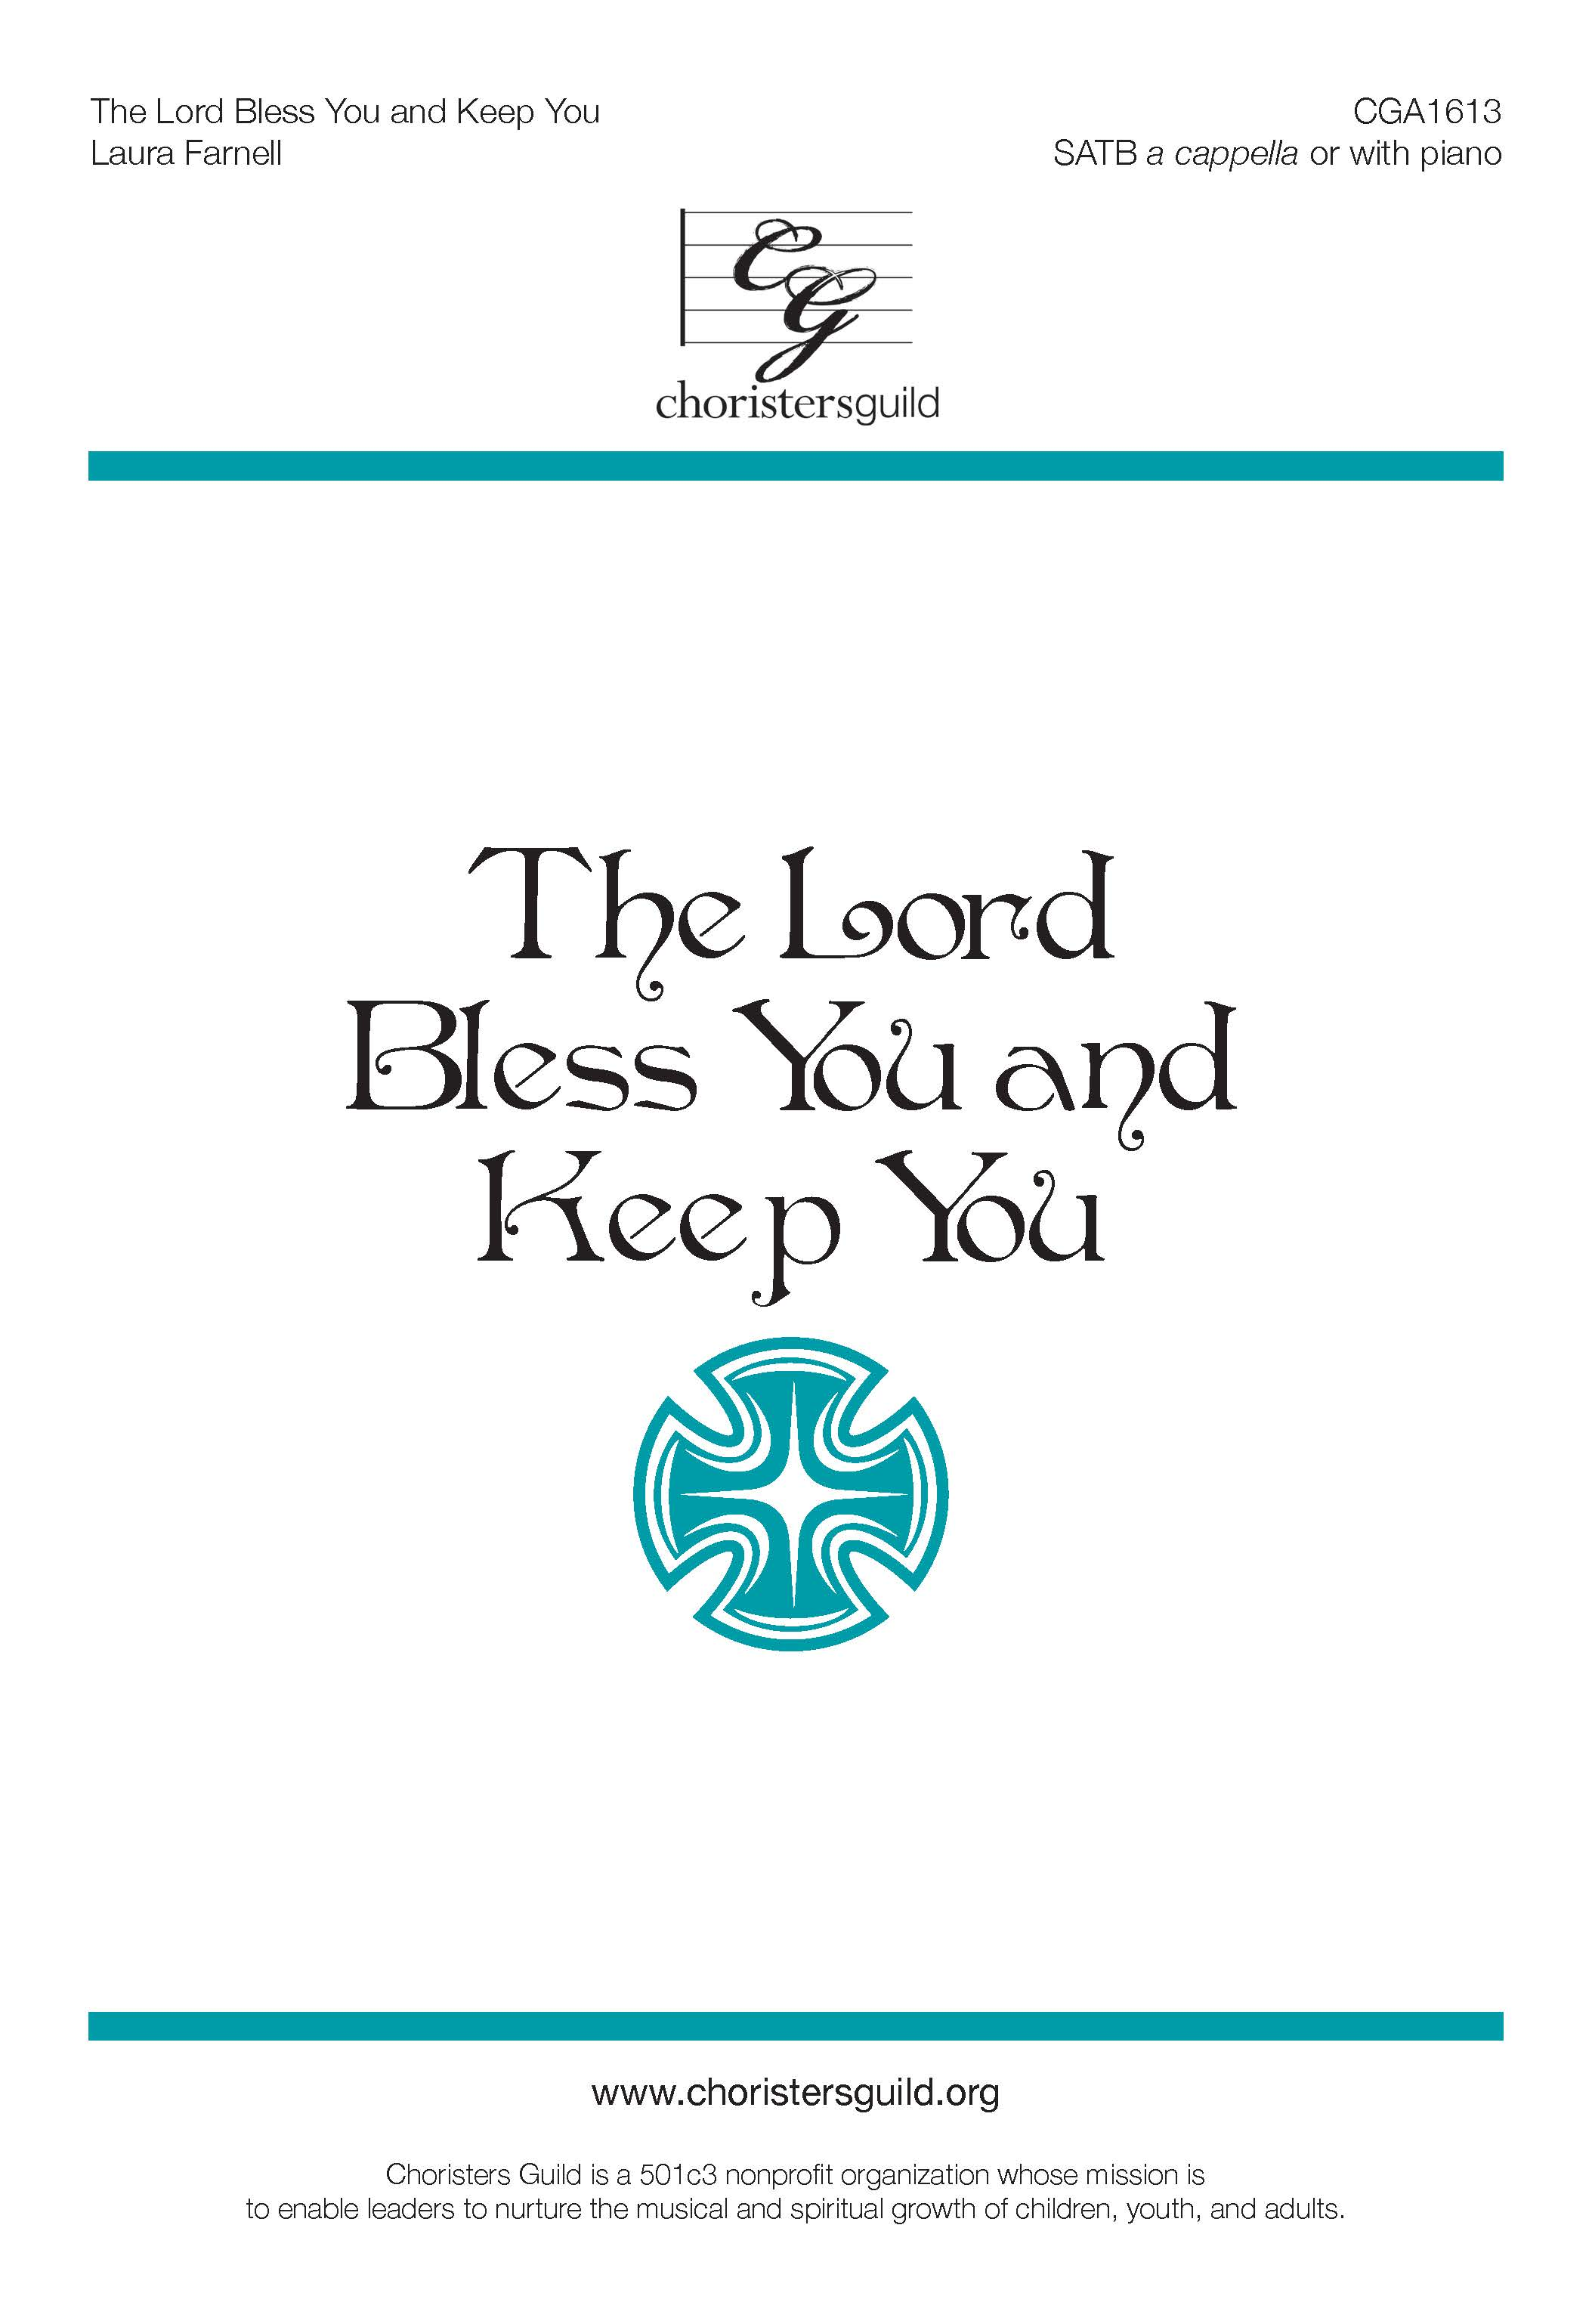 The Lord Bless You and Keep You - SATB